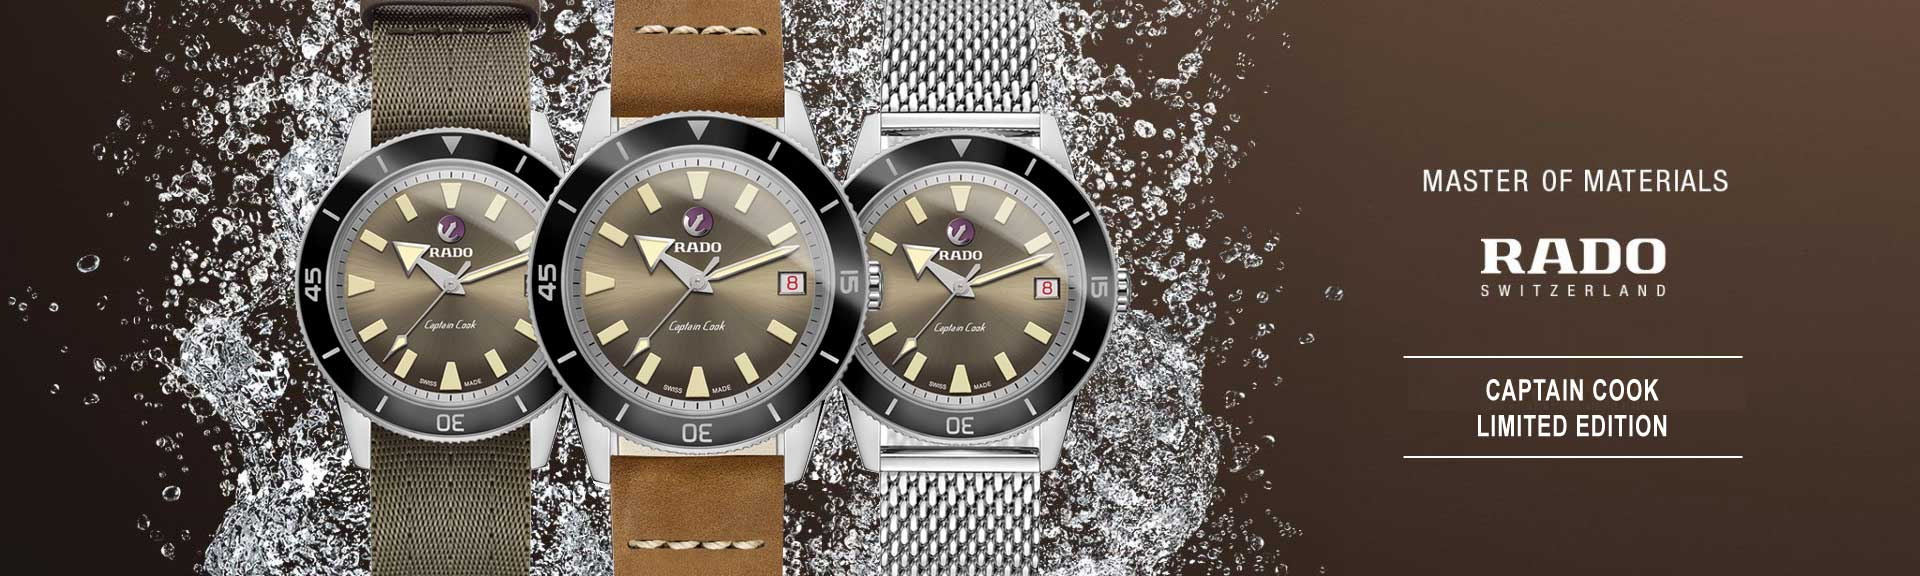 Rado Captain Cook Limited Edition Uhr Herren Automatik